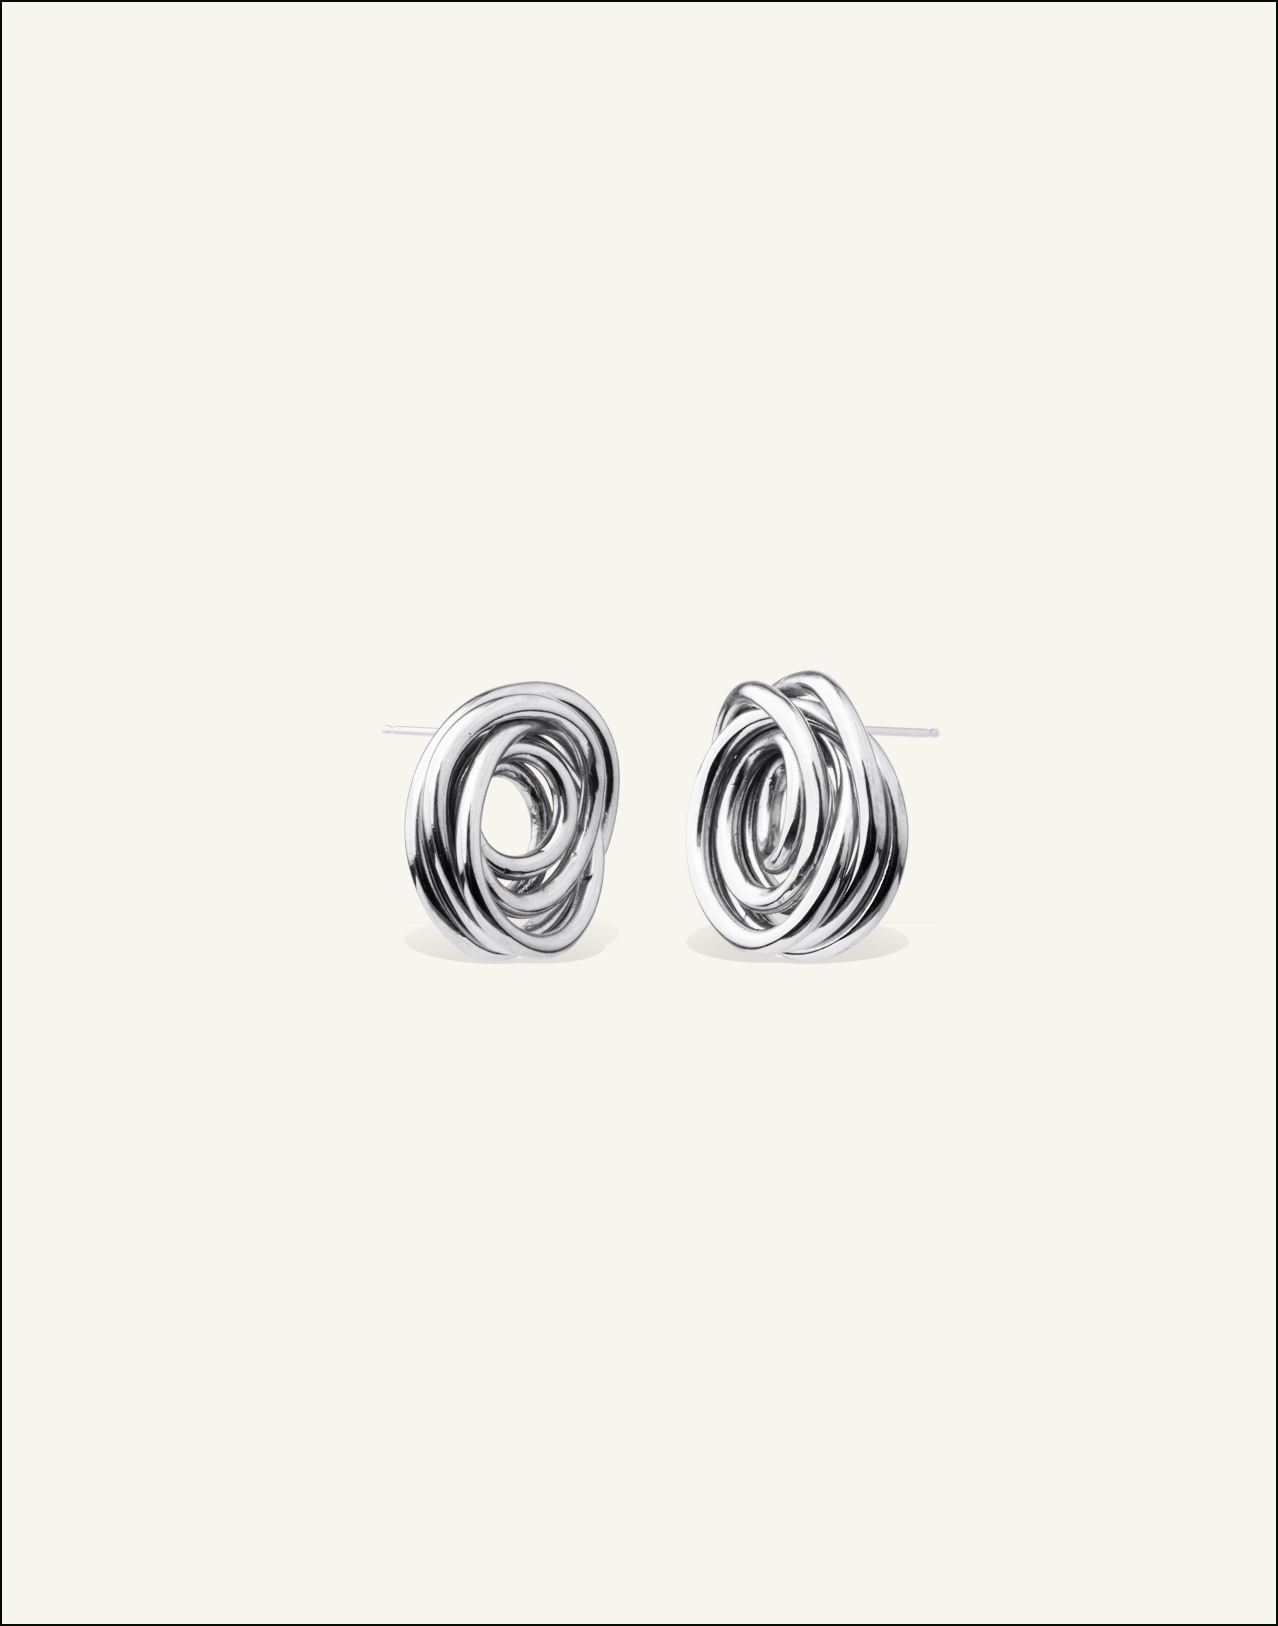 Completedworks-Silver-Earrings-Hotel-Matisse-3-1.jpg